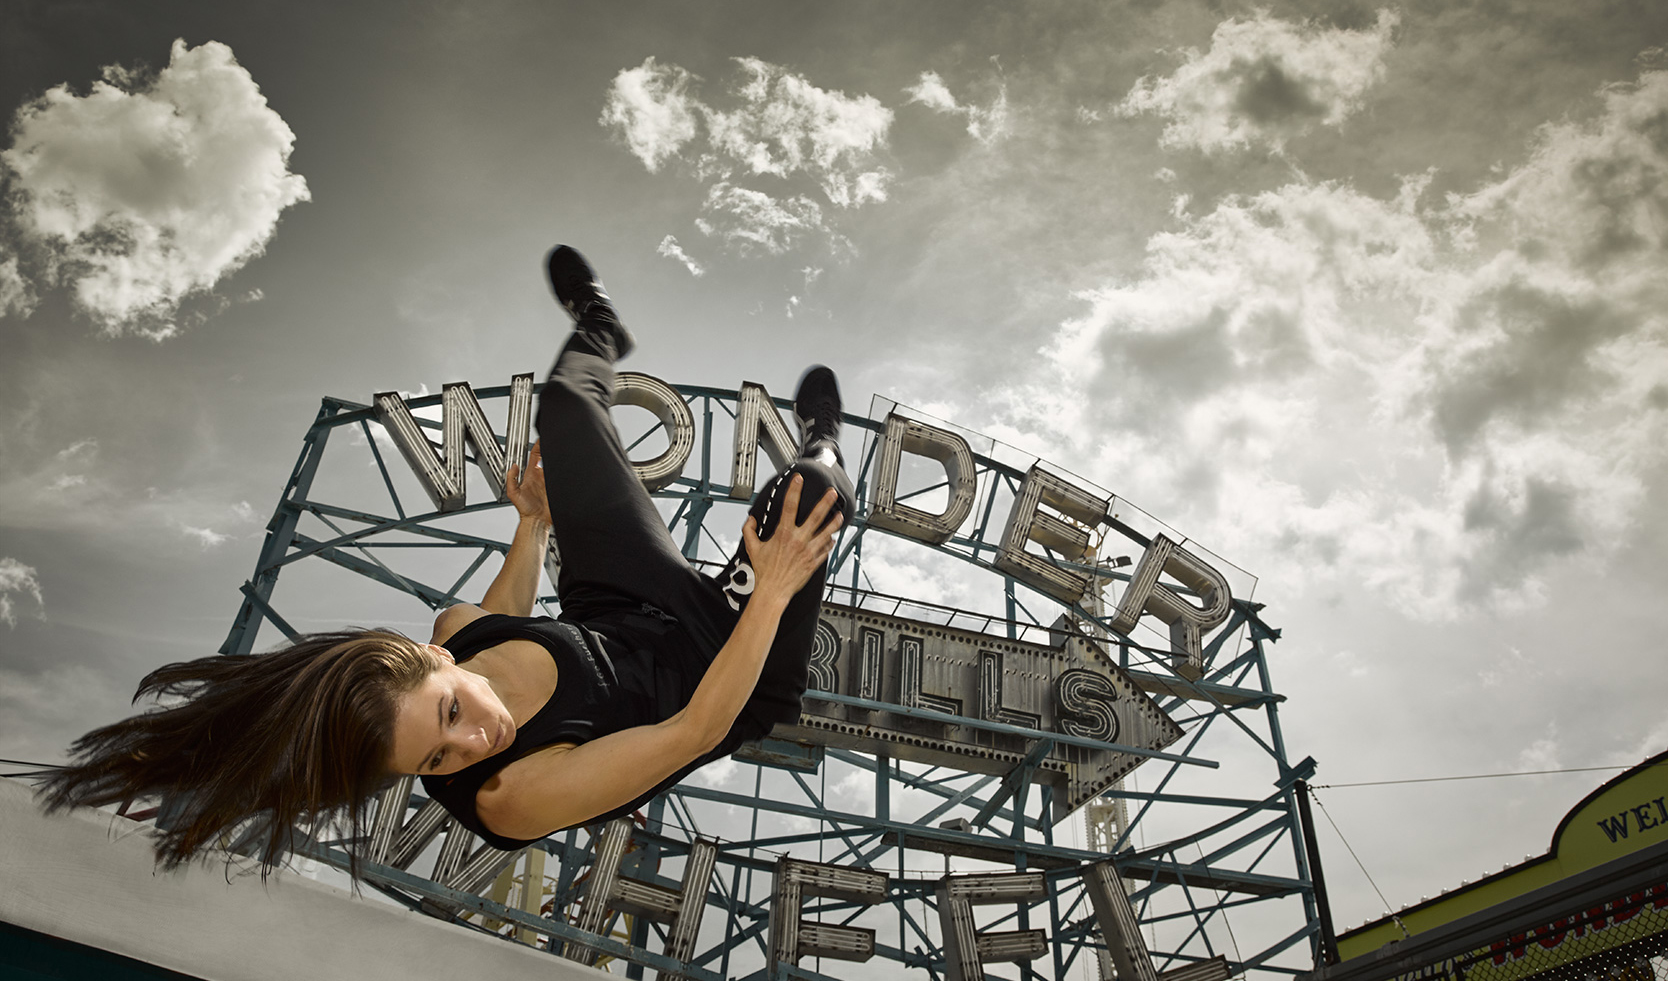 Grace Parkour Photoshoot